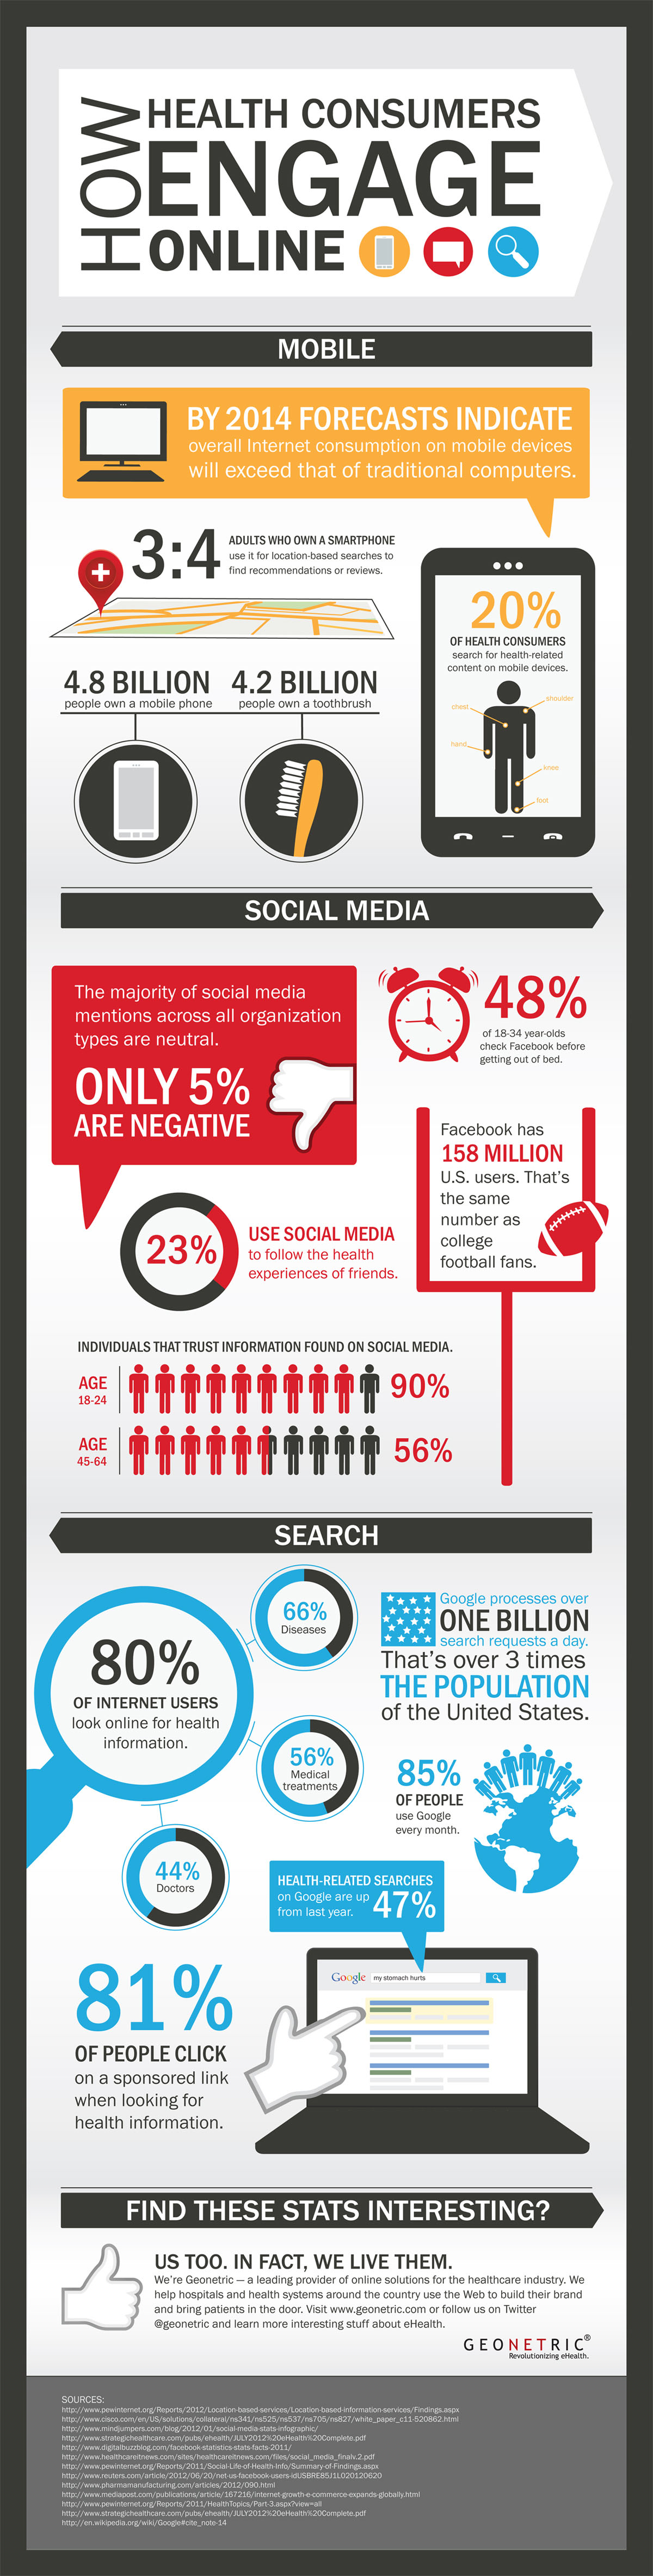 How Health Consumers Engage Online